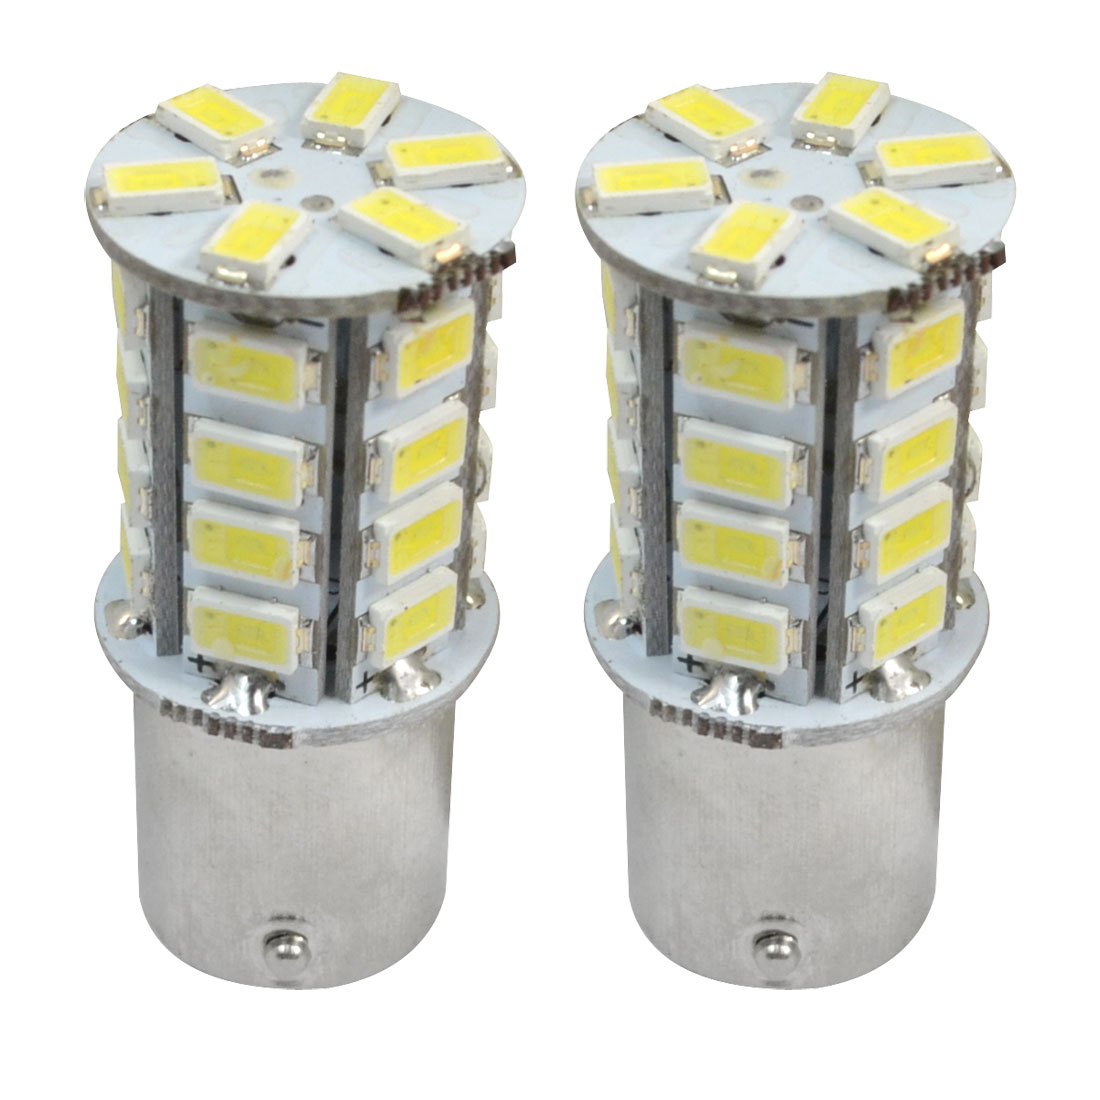 Pair BA15S 1156 30 5630 SMD LEDs Braking Bulb Stop Light Strob Flash White for Car